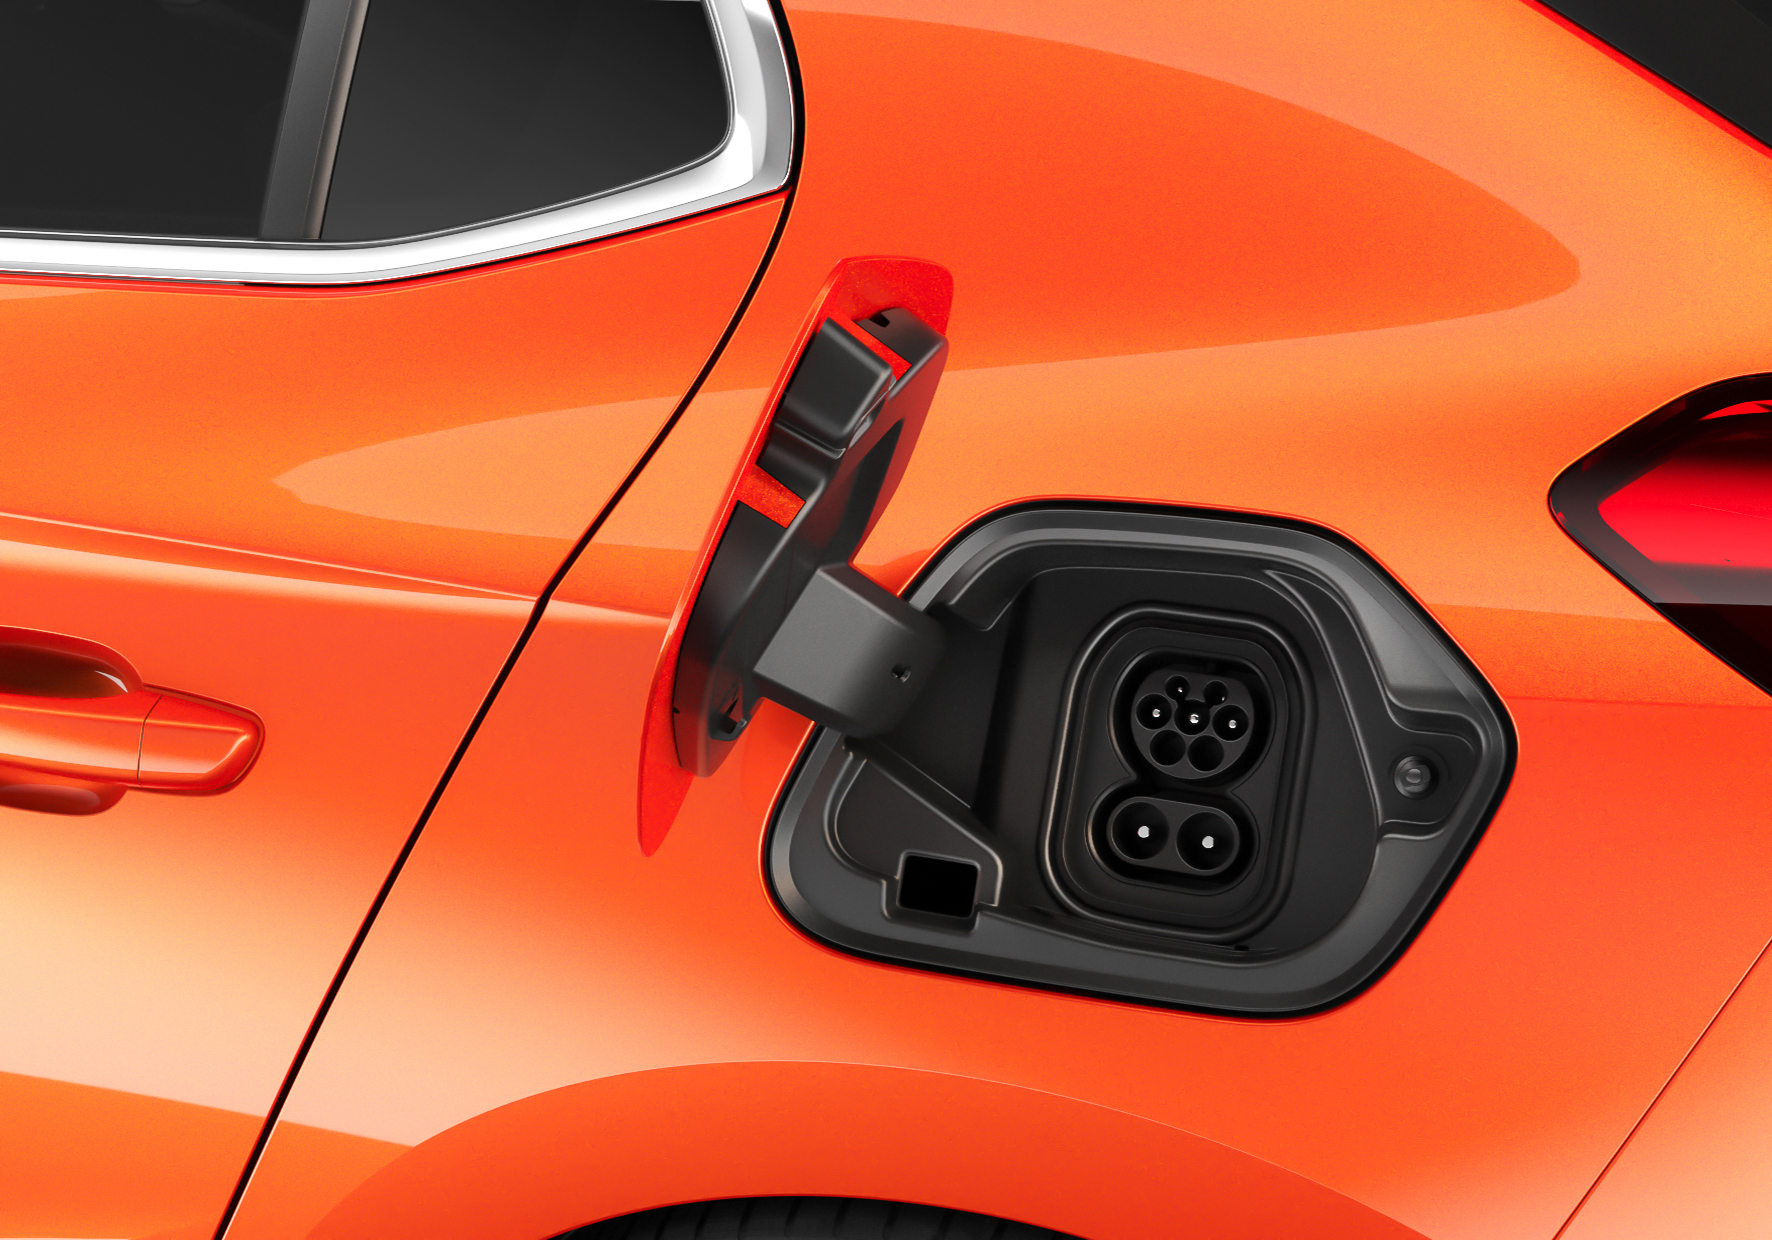 The charging port is located where you'd expect the fuel filler